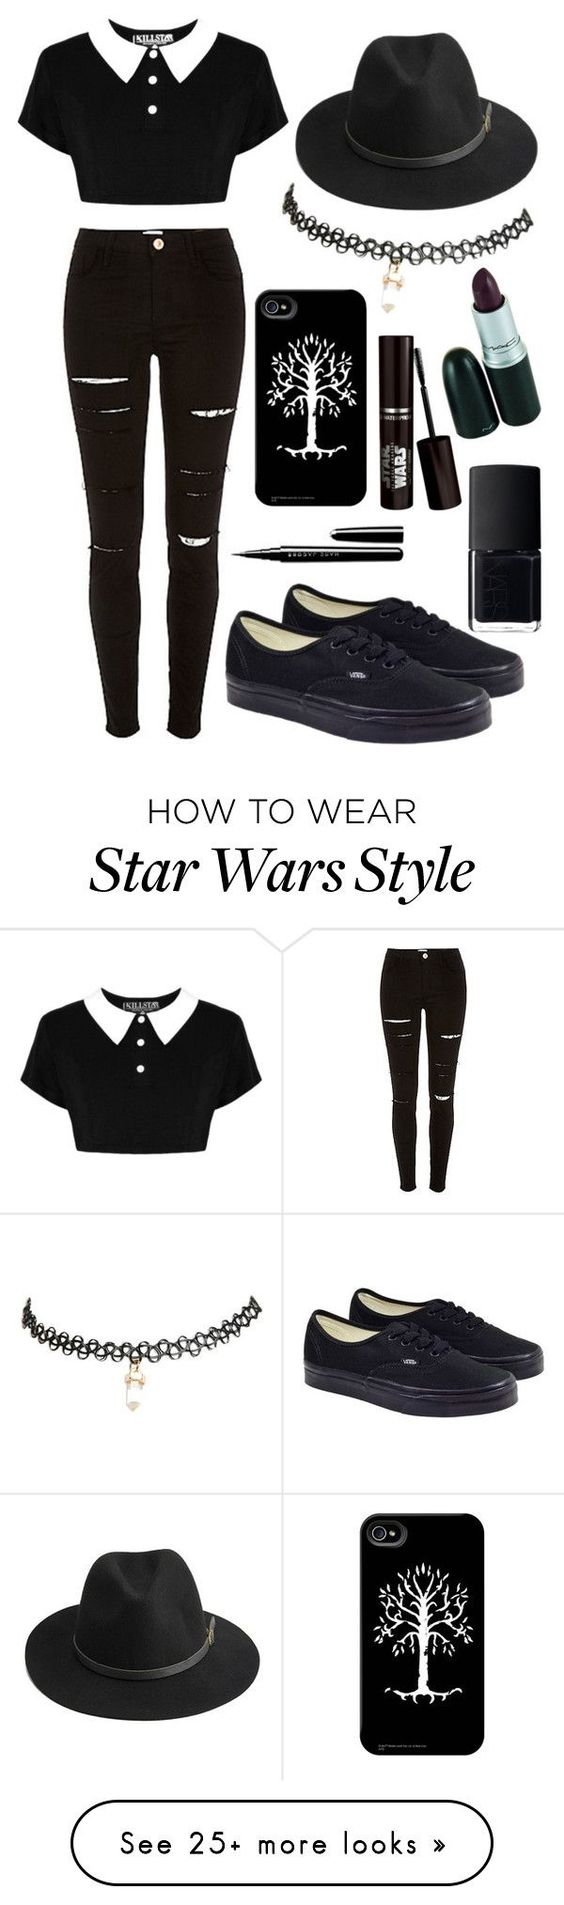 """Untitled #96"" by martinabranco on Polyvore featuring Vans, BeckSöndergaard, Wet Seal, Marc Jacobs and NARS Cosmetics:"